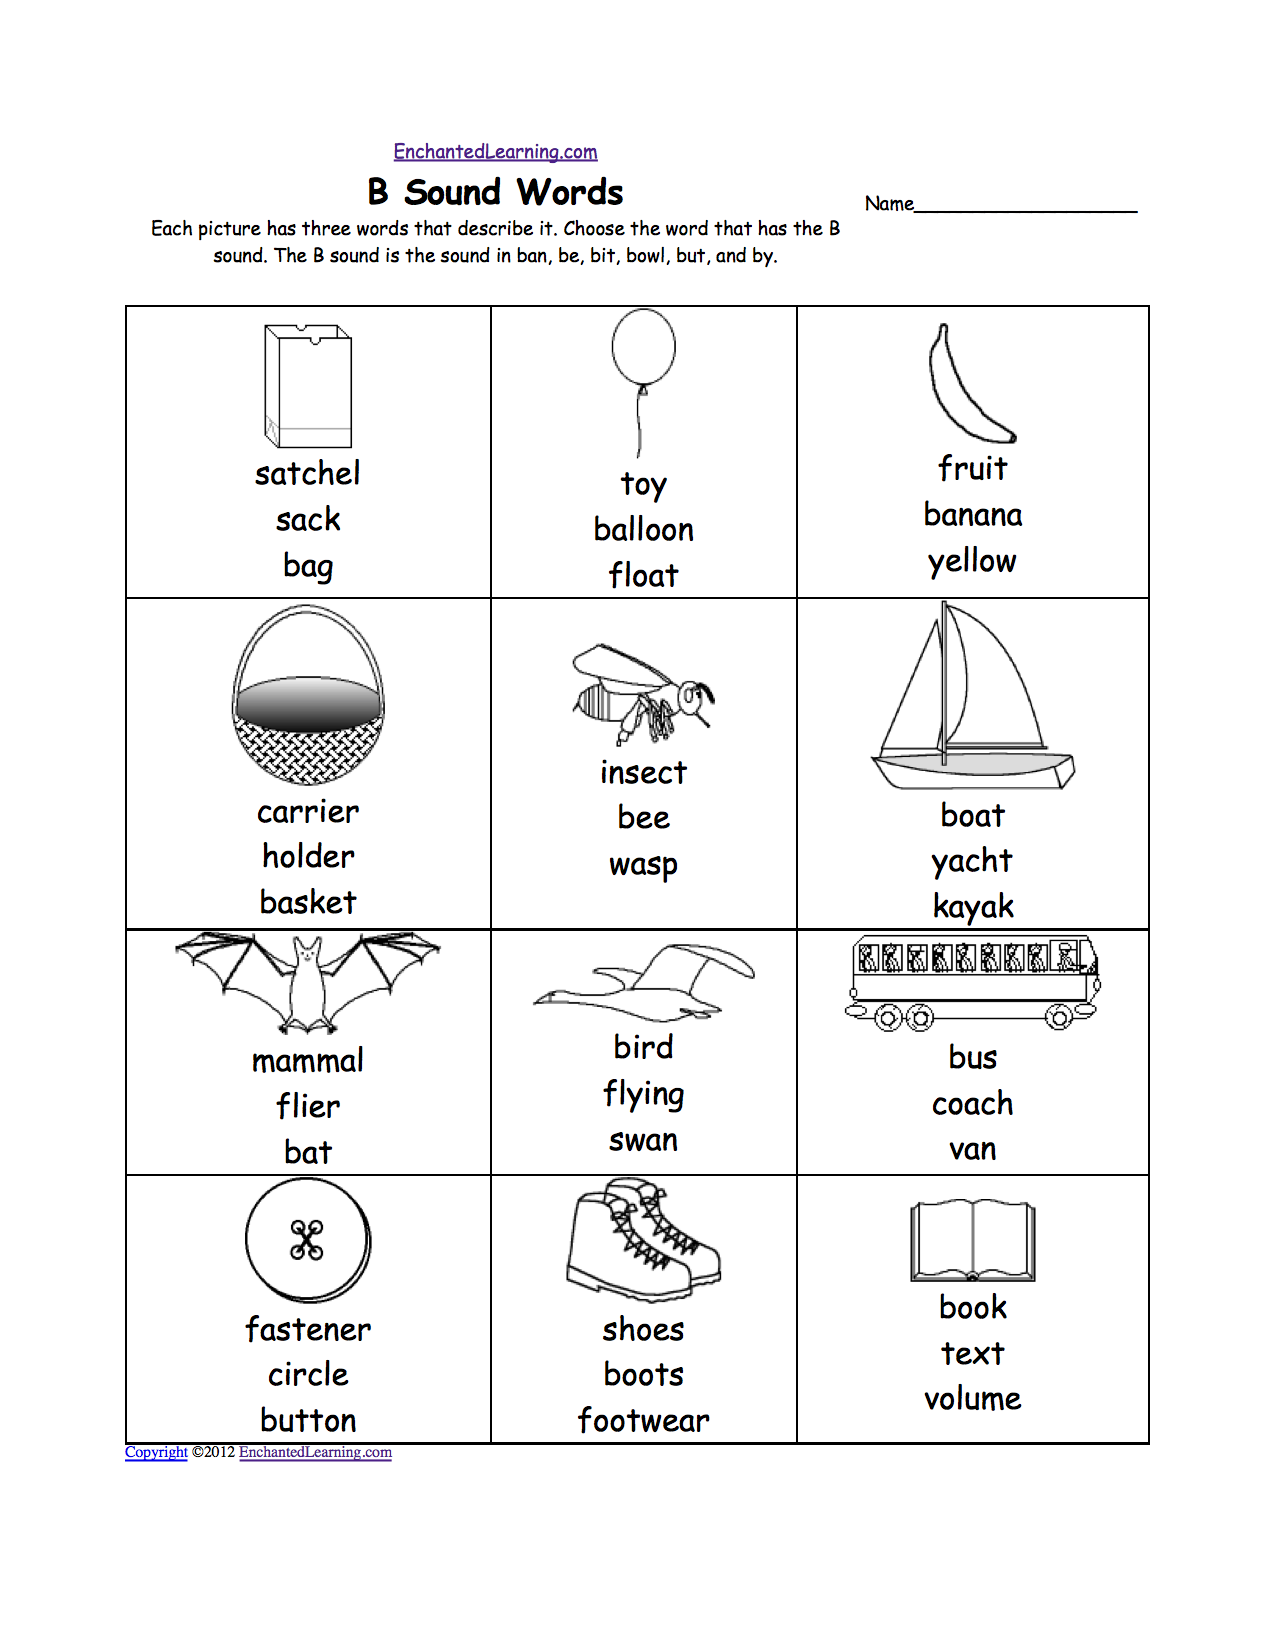 Weirdmailus  Picturesque Phonics Worksheets Multiple Choice Worksheets To Print  With Fair Quotbquot Sound Phonics Worksheet Multiple Choice Each Picture Has Three Words That Describe It Choose The Word That Has A Quotbquot Sound The Quotbquot Sound Is The Sound  With Agreeable Worksheets Decimals To Fractions Also Animals And Their Food Worksheets In Addition Problems Solving Worksheets And Worksheets On Prepositions For Grade  As Well As Comprehension Worksheets Year  Additionally Non Standard Unit Of Measurement Worksheets From Enchantedlearningcom With Weirdmailus  Fair Phonics Worksheets Multiple Choice Worksheets To Print  With Agreeable Quotbquot Sound Phonics Worksheet Multiple Choice Each Picture Has Three Words That Describe It Choose The Word That Has A Quotbquot Sound The Quotbquot Sound Is The Sound  And Picturesque Worksheets Decimals To Fractions Also Animals And Their Food Worksheets In Addition Problems Solving Worksheets From Enchantedlearningcom